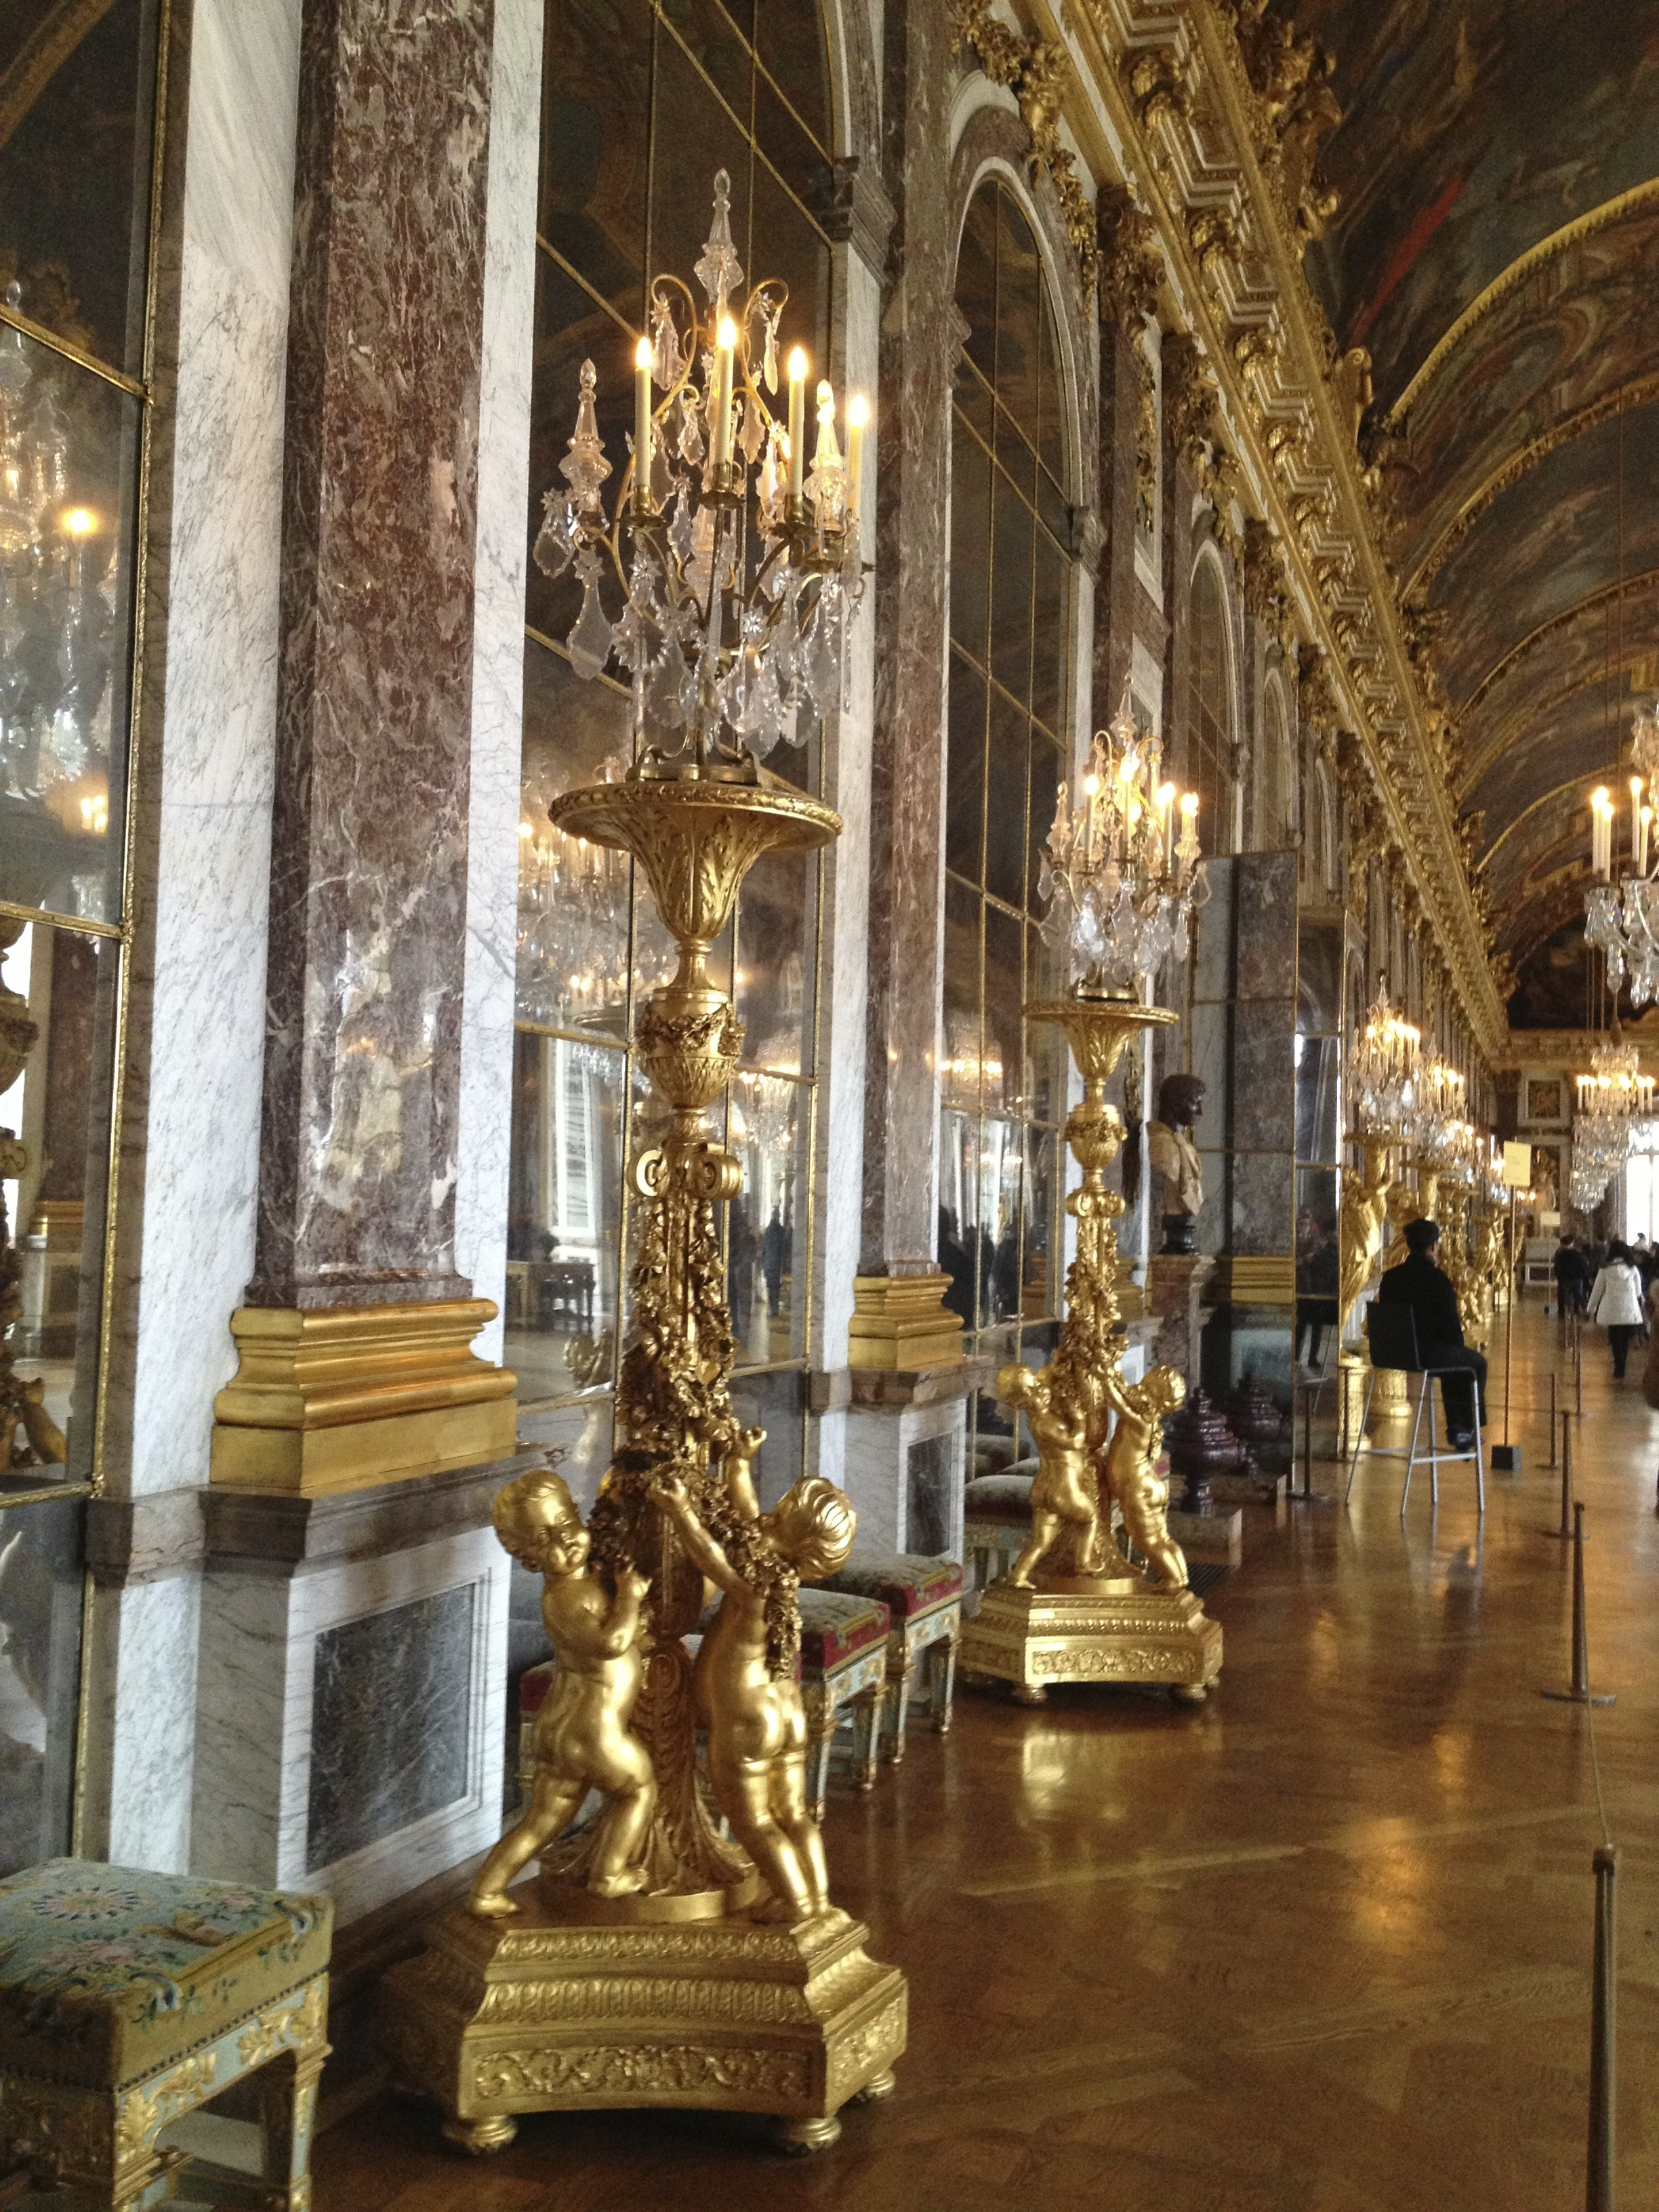 The palace of versailles paris - Decoratie themakamer paris ...